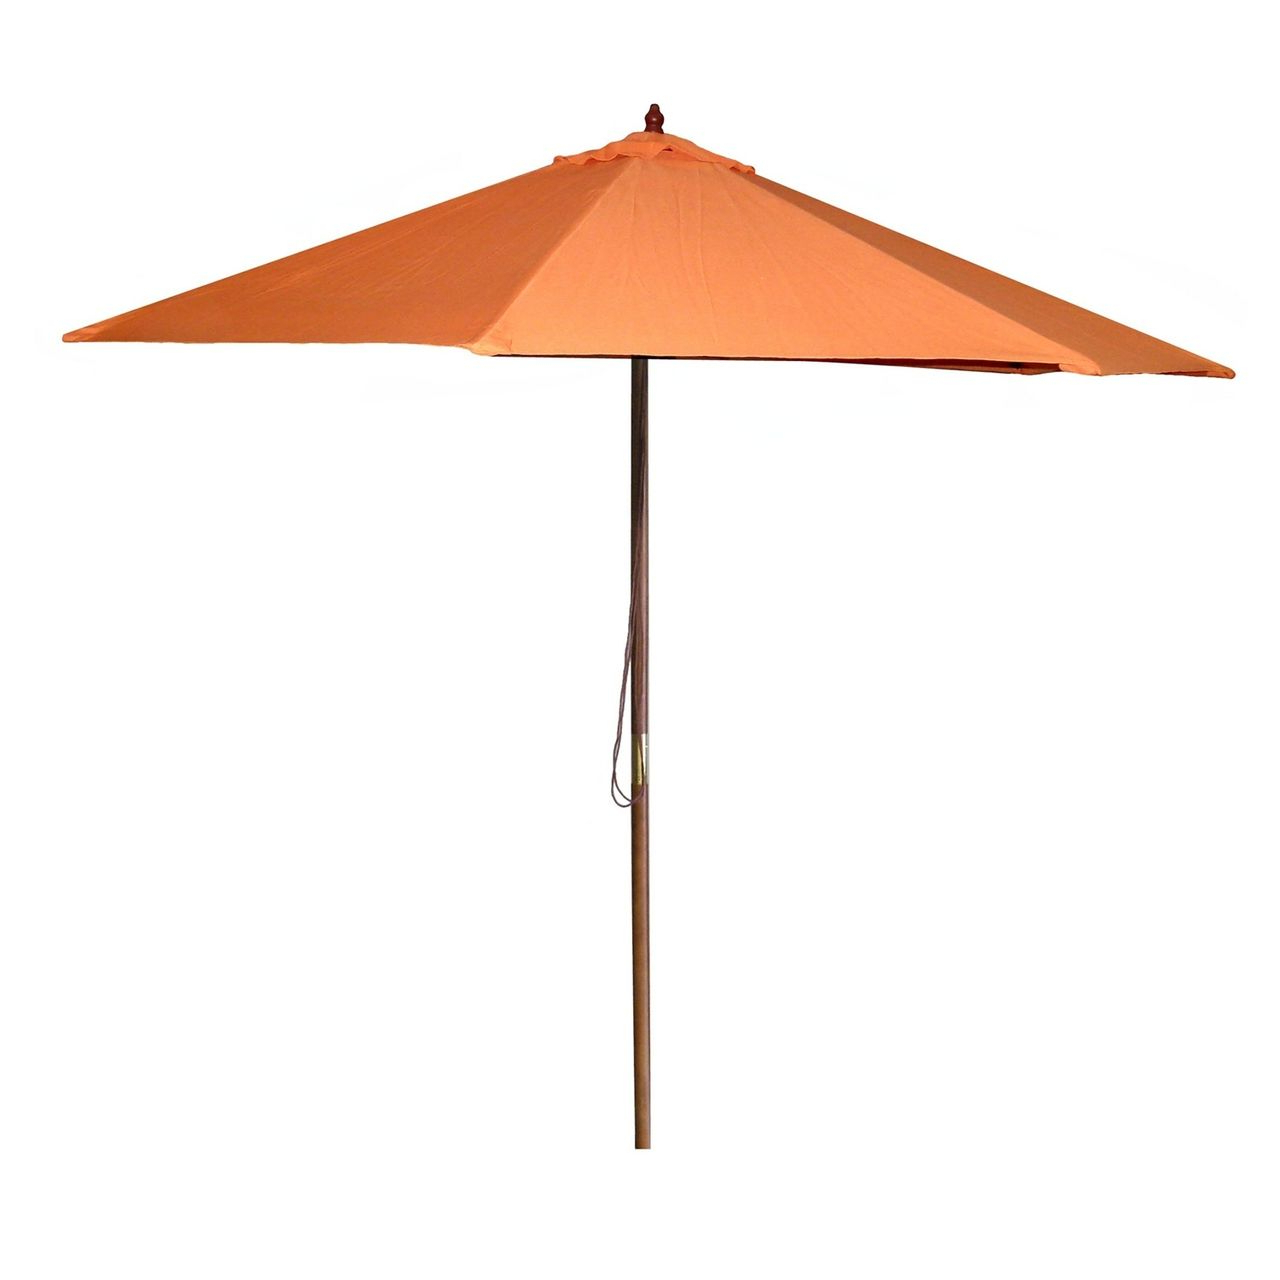 Popular Devansh Market Umbrellas With 9 Ft Patio Pulley Umbrella With Wood Pole And Orange Canopy (View 8 of 20)